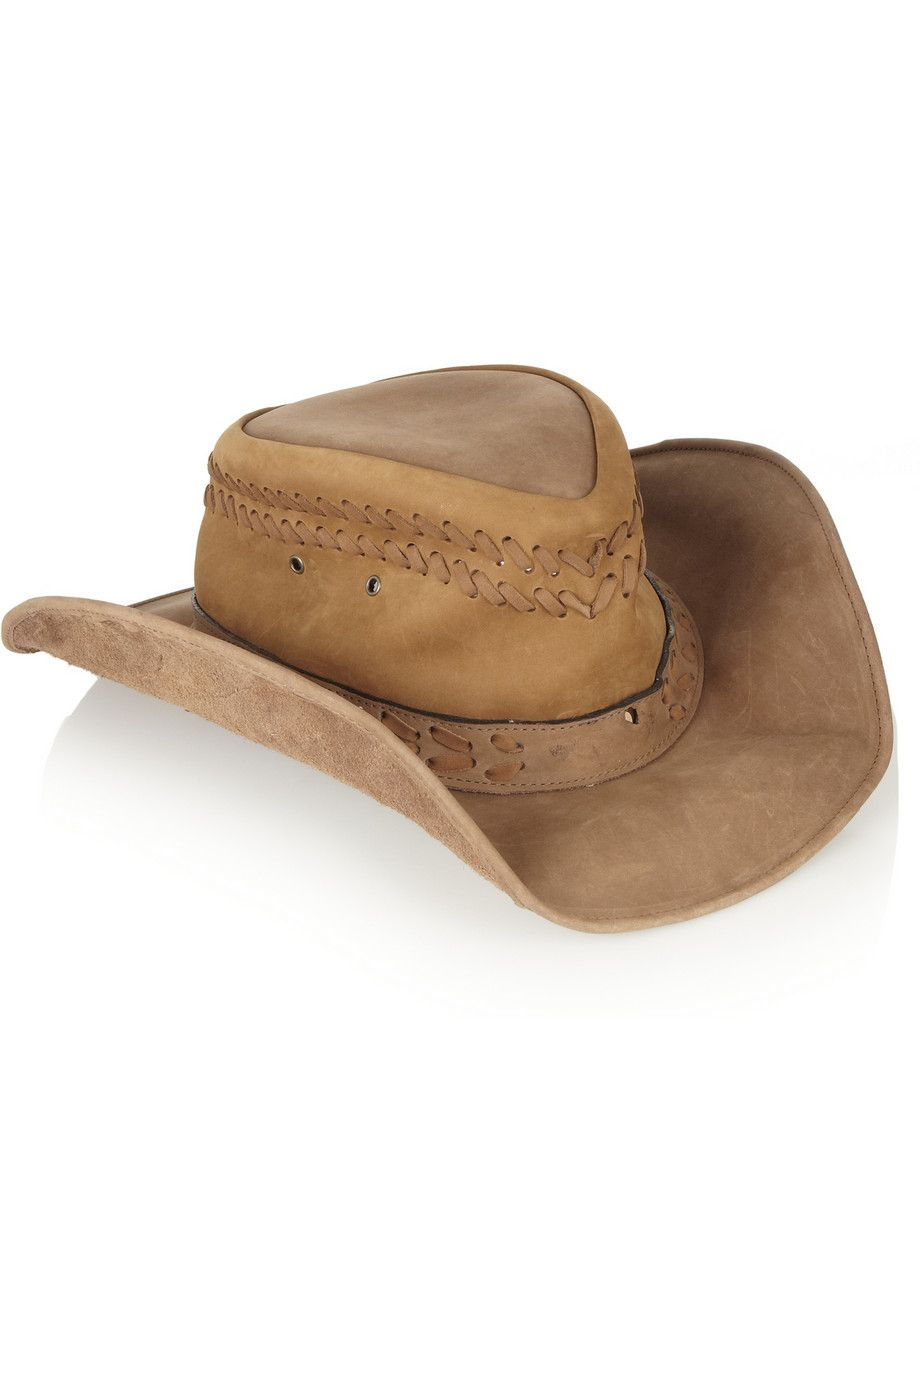 698f961190503 Planet Cowboy Six Shooter Nubuck Cowboy Hat